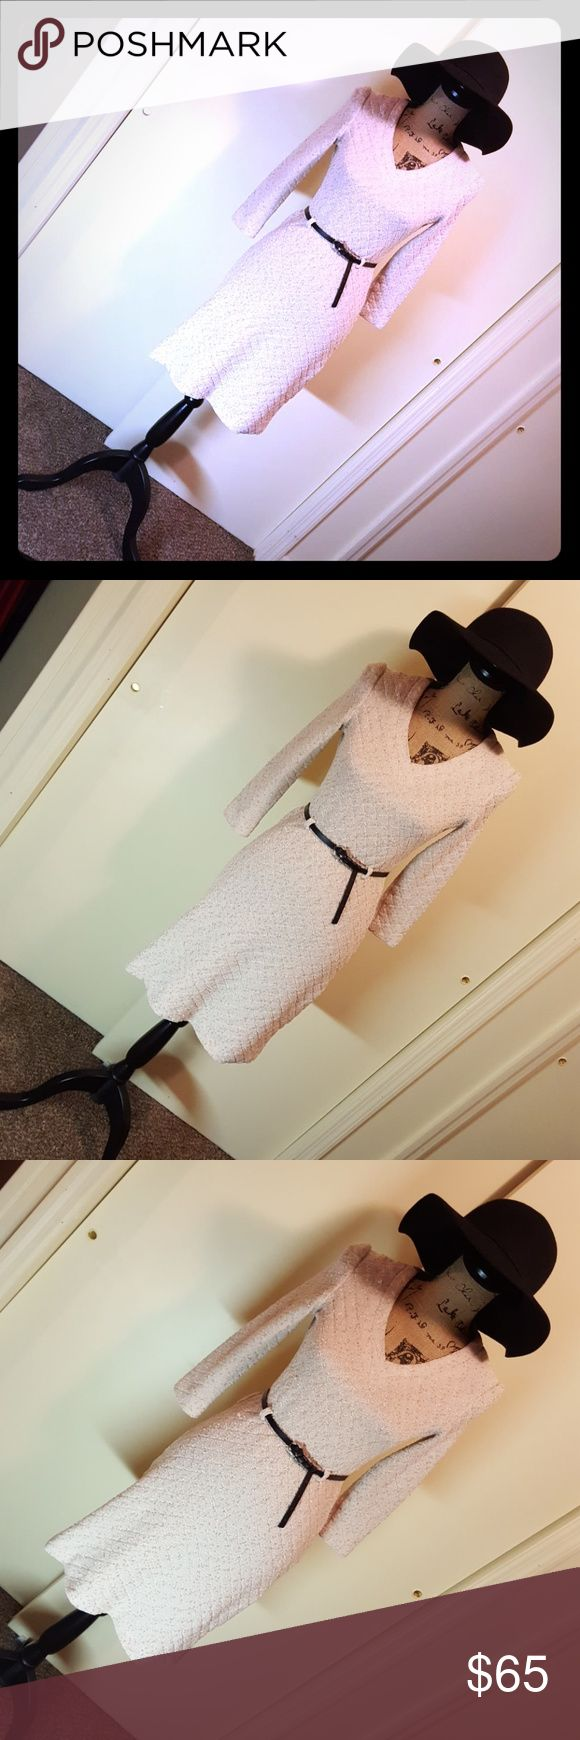 🍂Vintage Leslie Fay Dress 🍂 🍂Vintage Leslie Fay LF Petite Dress🍂 🍂Vintage Puker Sweater Dress🍂 🍂Cream/Beige Colored Dress🍂 🍂Stretch To The Knit/Sweater🍂 🍂No Size Tag🍂 🍂Fit X-Small and Small 🍂 🍂Excellent Condition🍂  🚫ACCESSORIES NOT INCLUDED🚫 Vintage Dresses